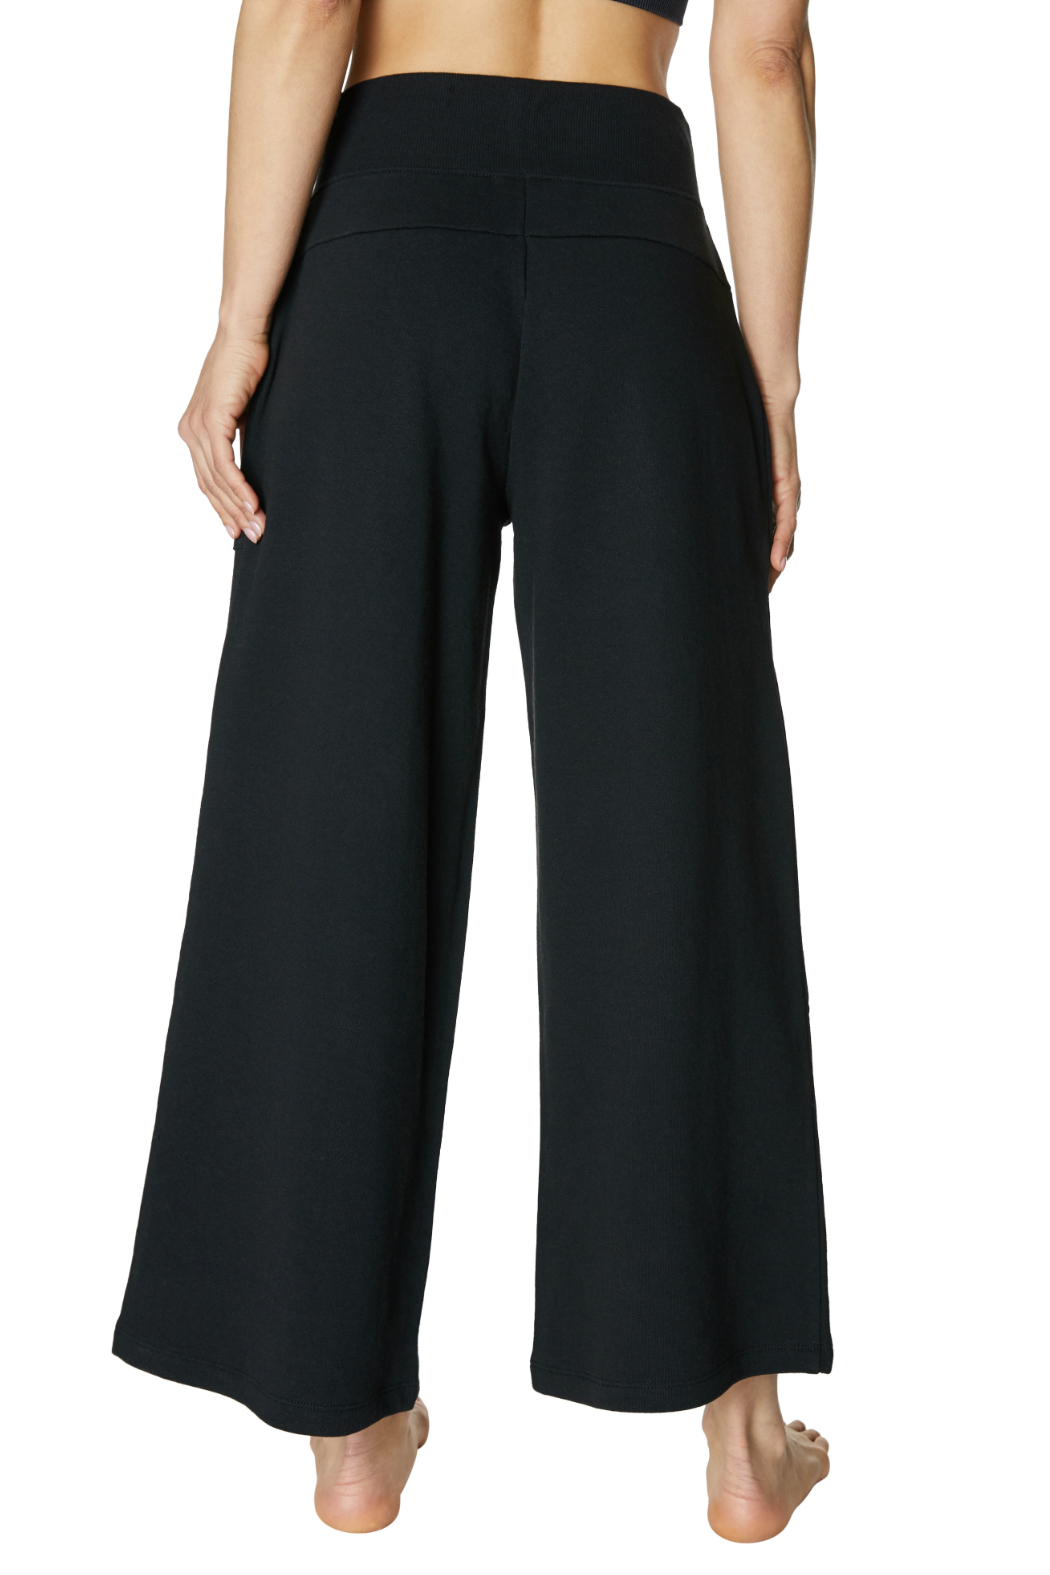 Betsey Johnson Zip Front Hi Waisted Crop Sweatpant - Side Cropped Image